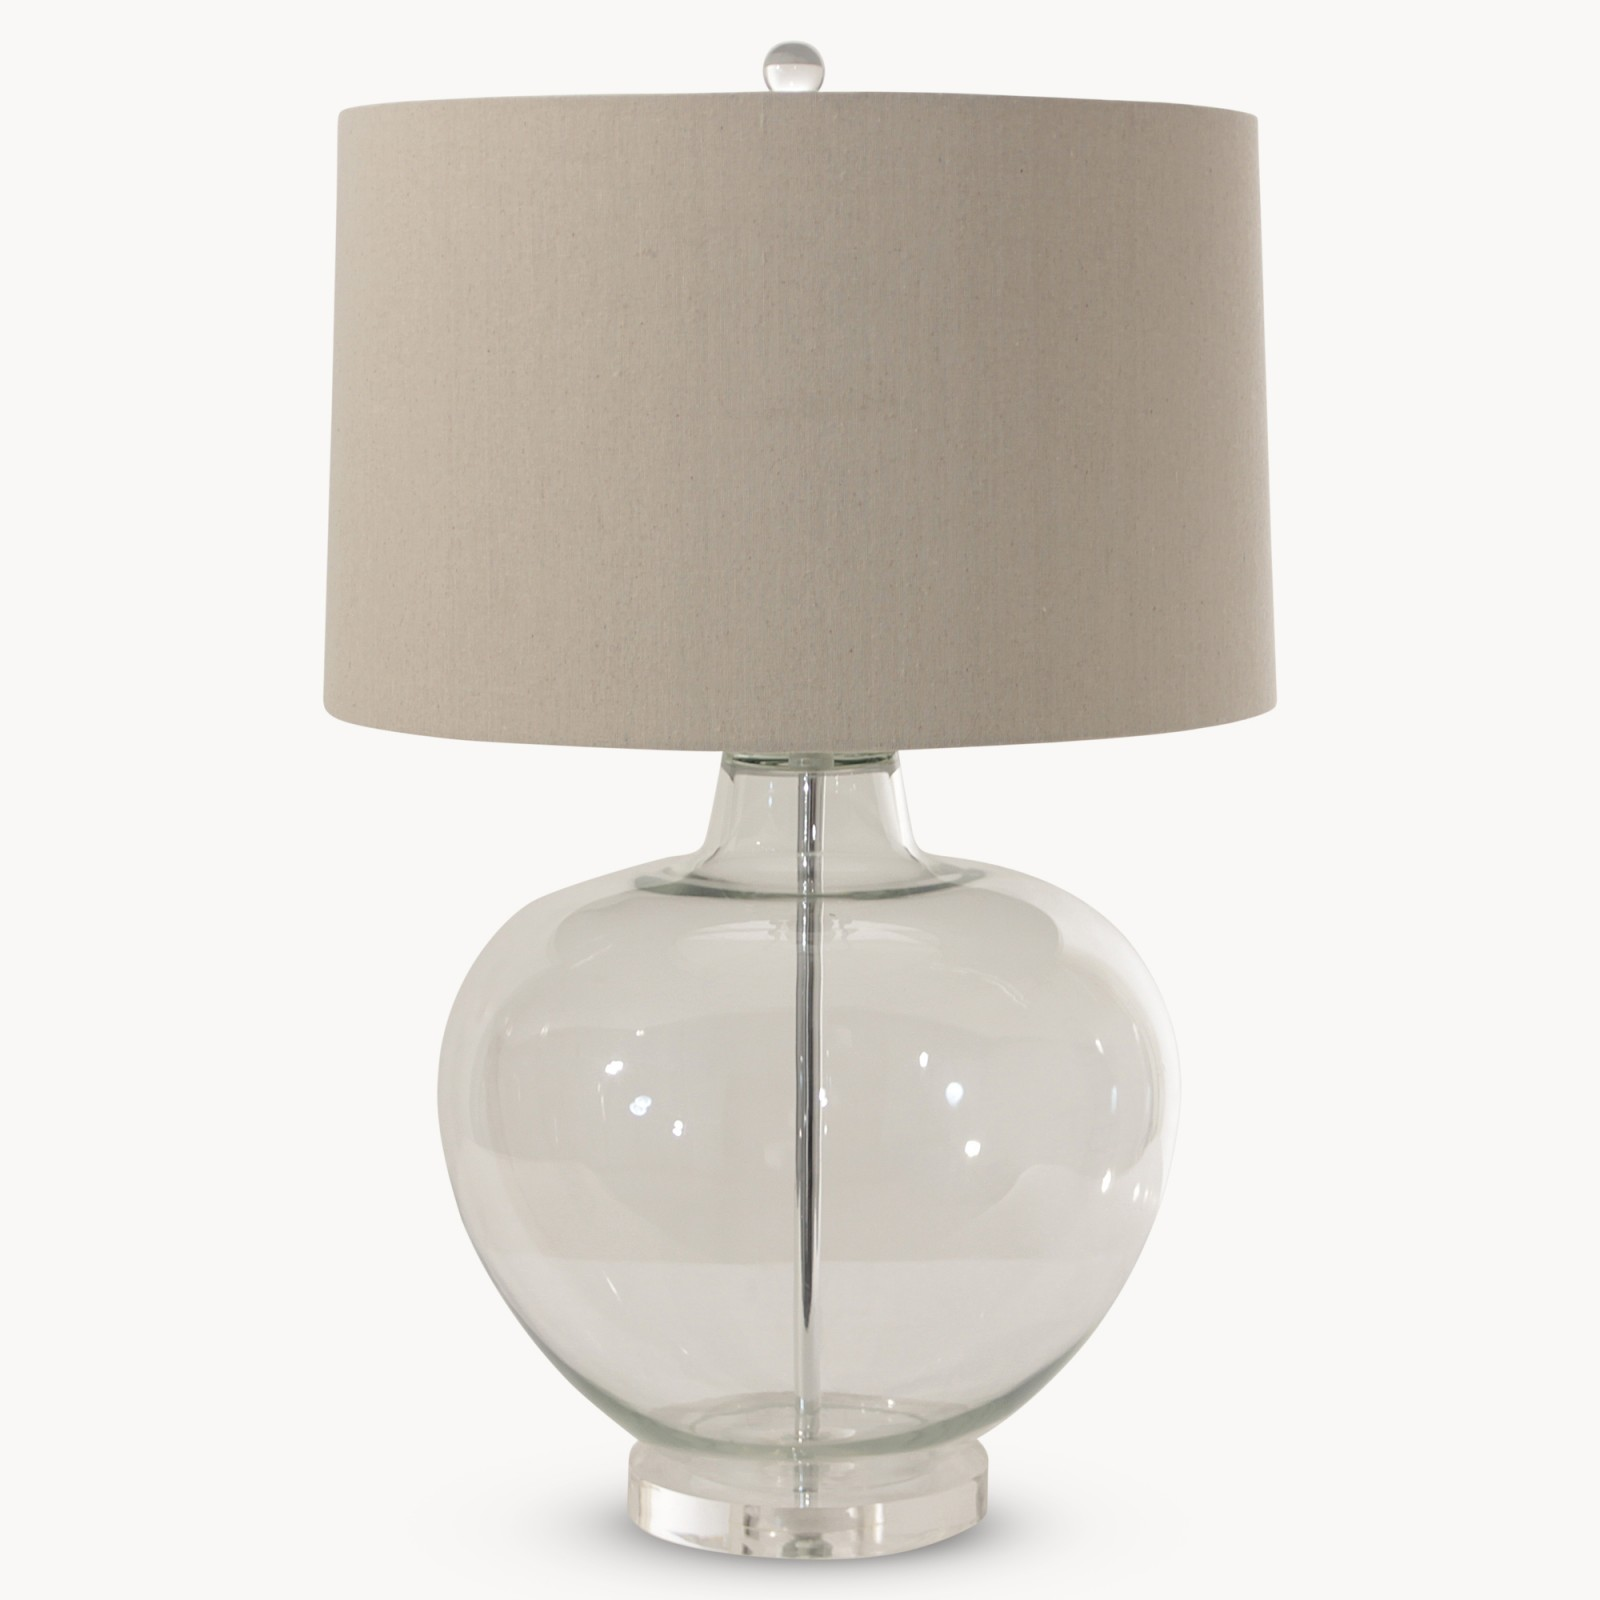 Ow Clifton Clear Glass Table Lamp With Shade Country Furniture Barn